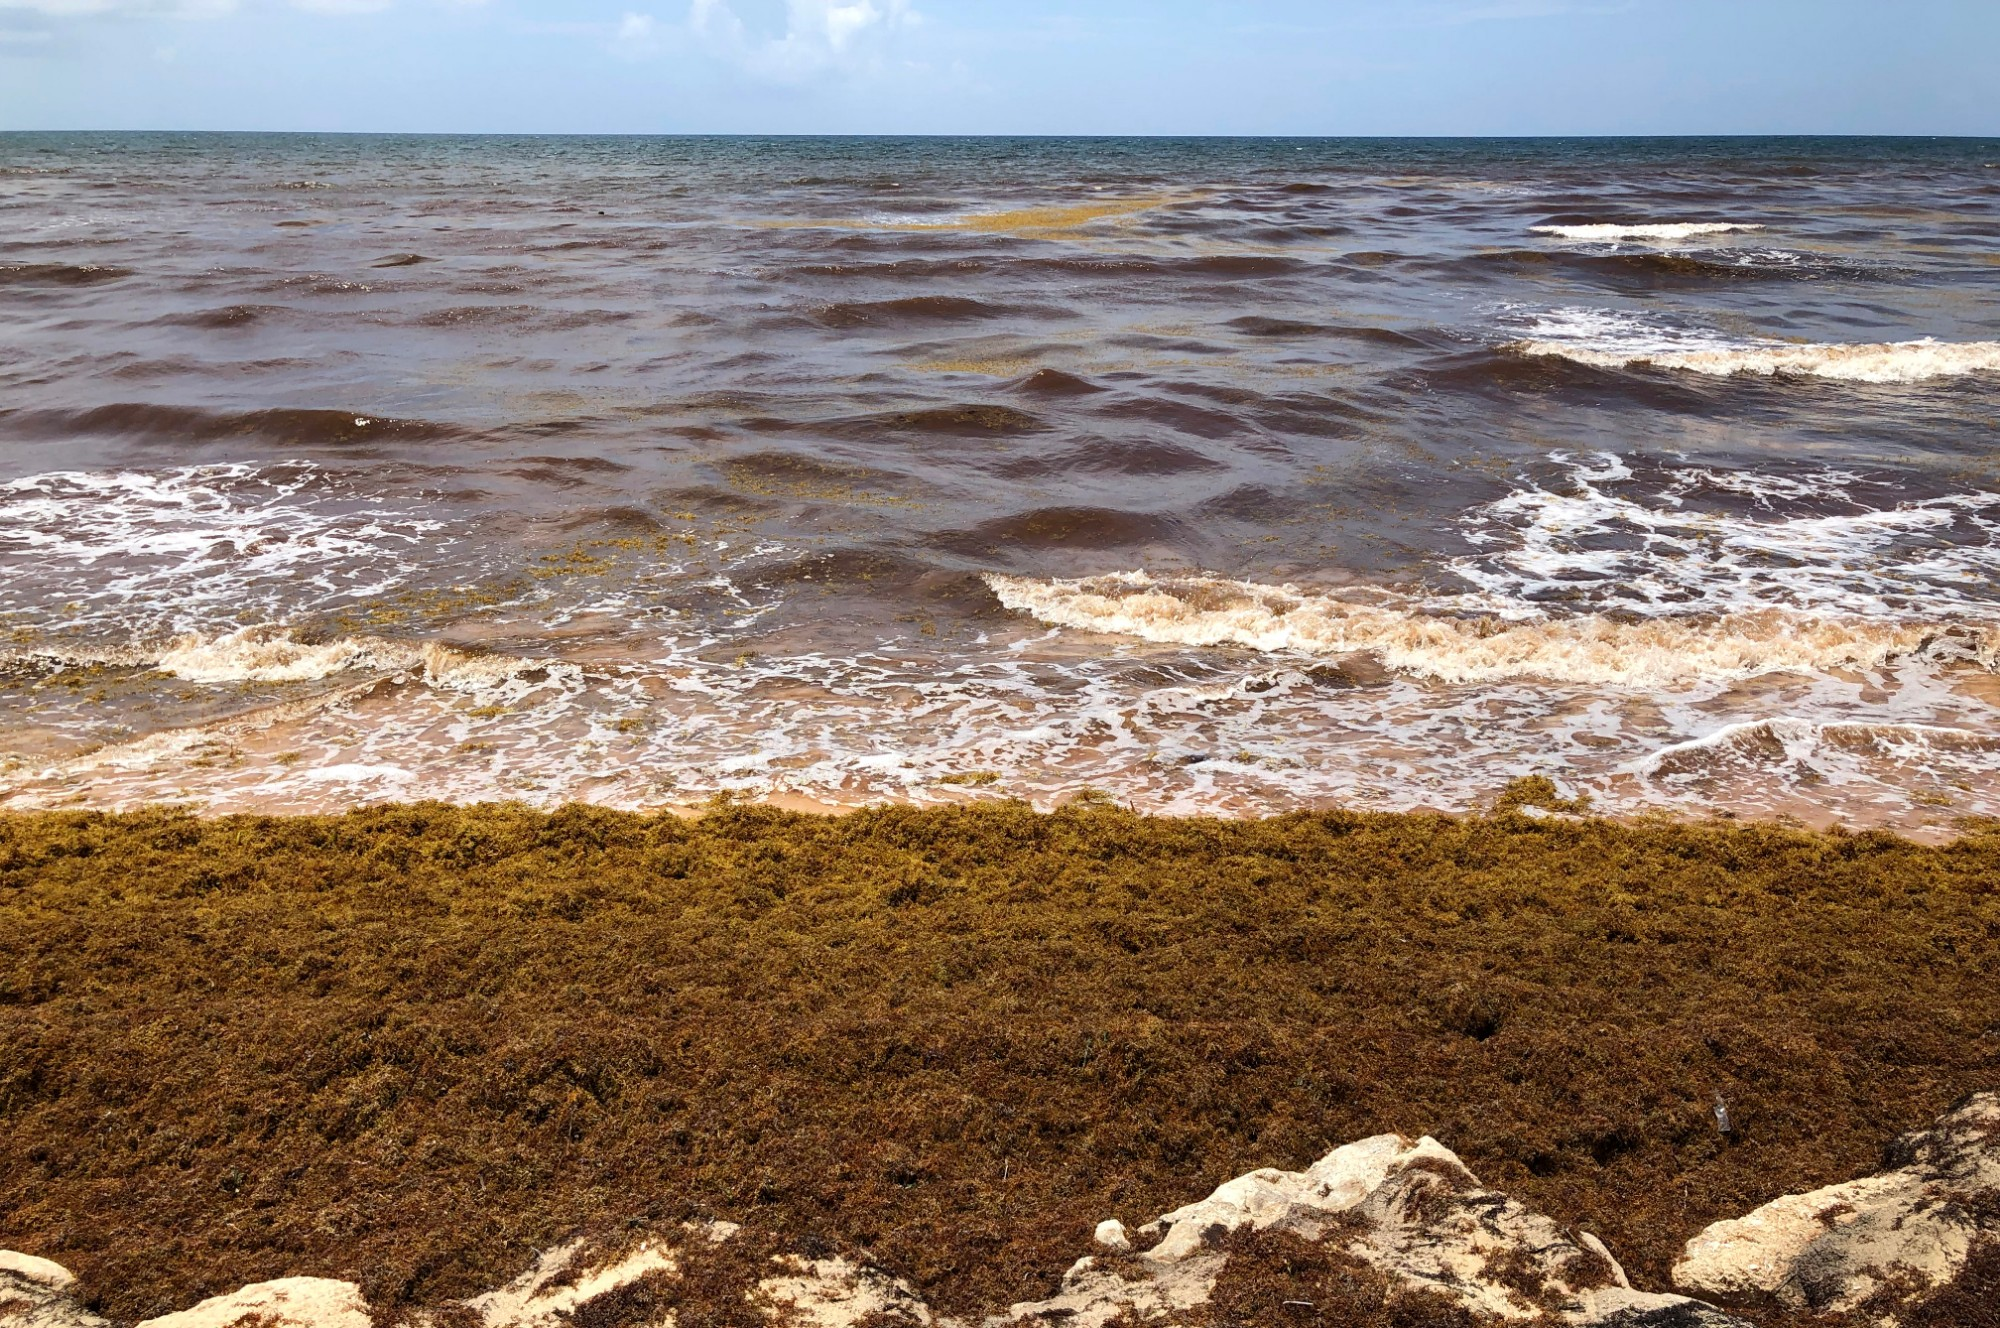 Stinky seaweed is coating beaches and coastlines in these